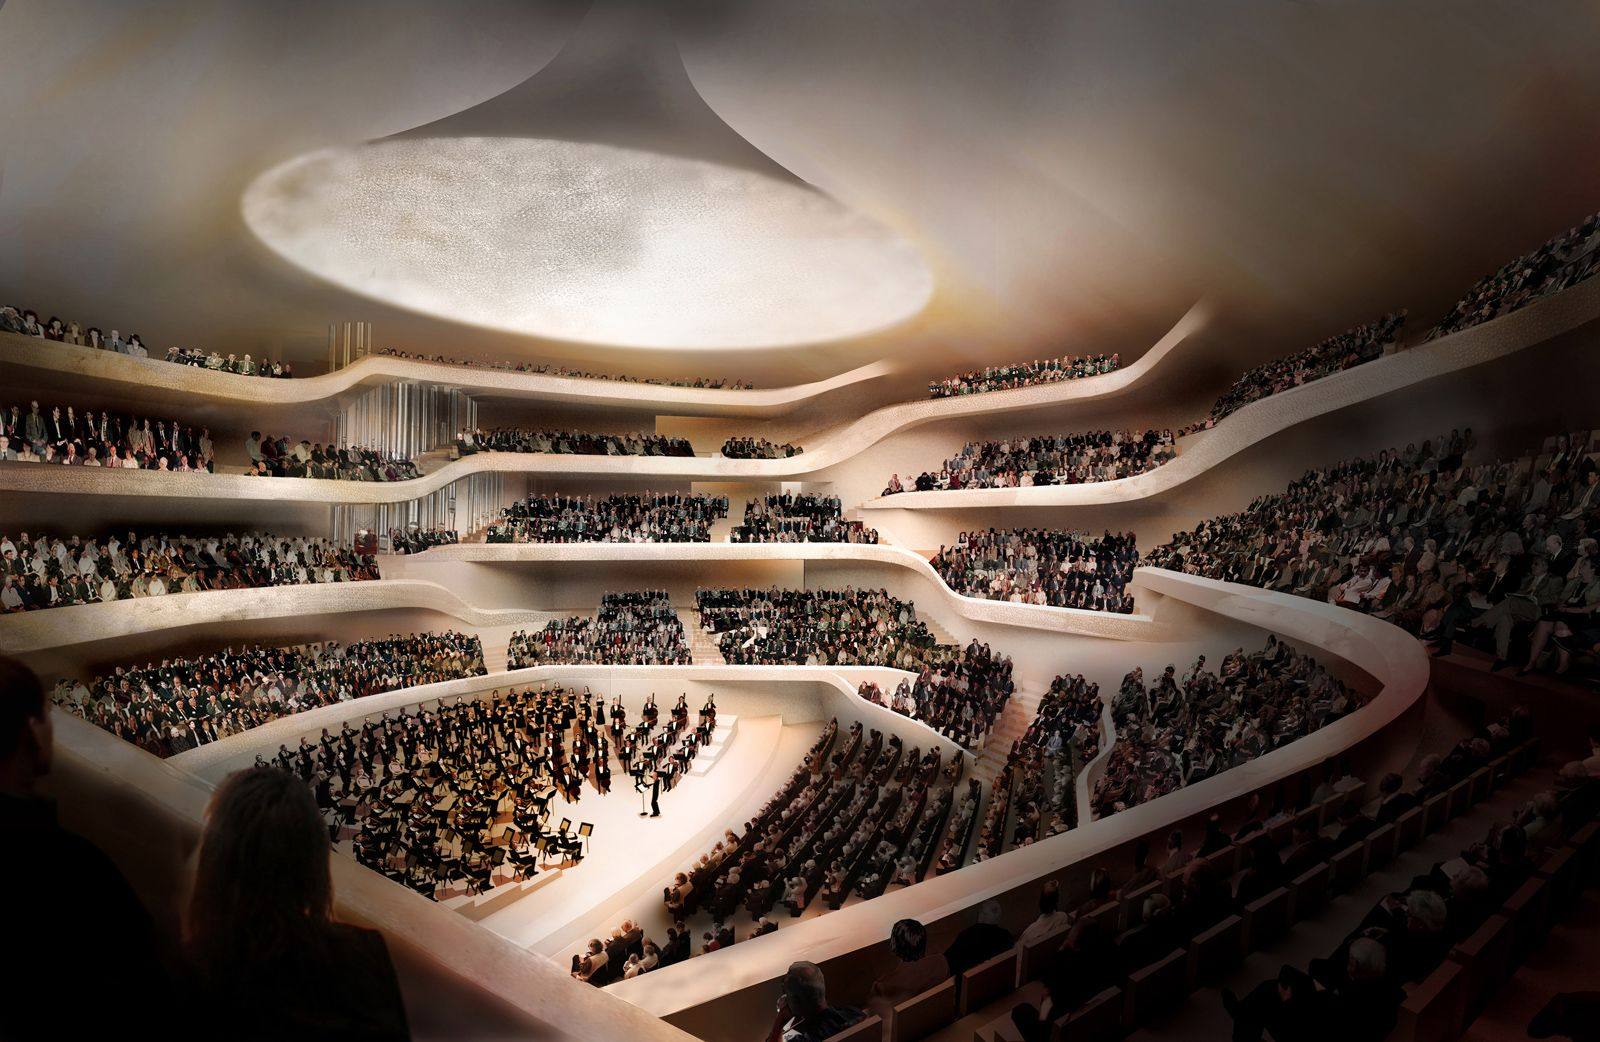 Take A First Glimpse Of Life Inside Hamburg S Elbphilharmonie The Spaces Concert Hall Elbphilharmonie Concert Hall Elbphilharmonie Hamburg